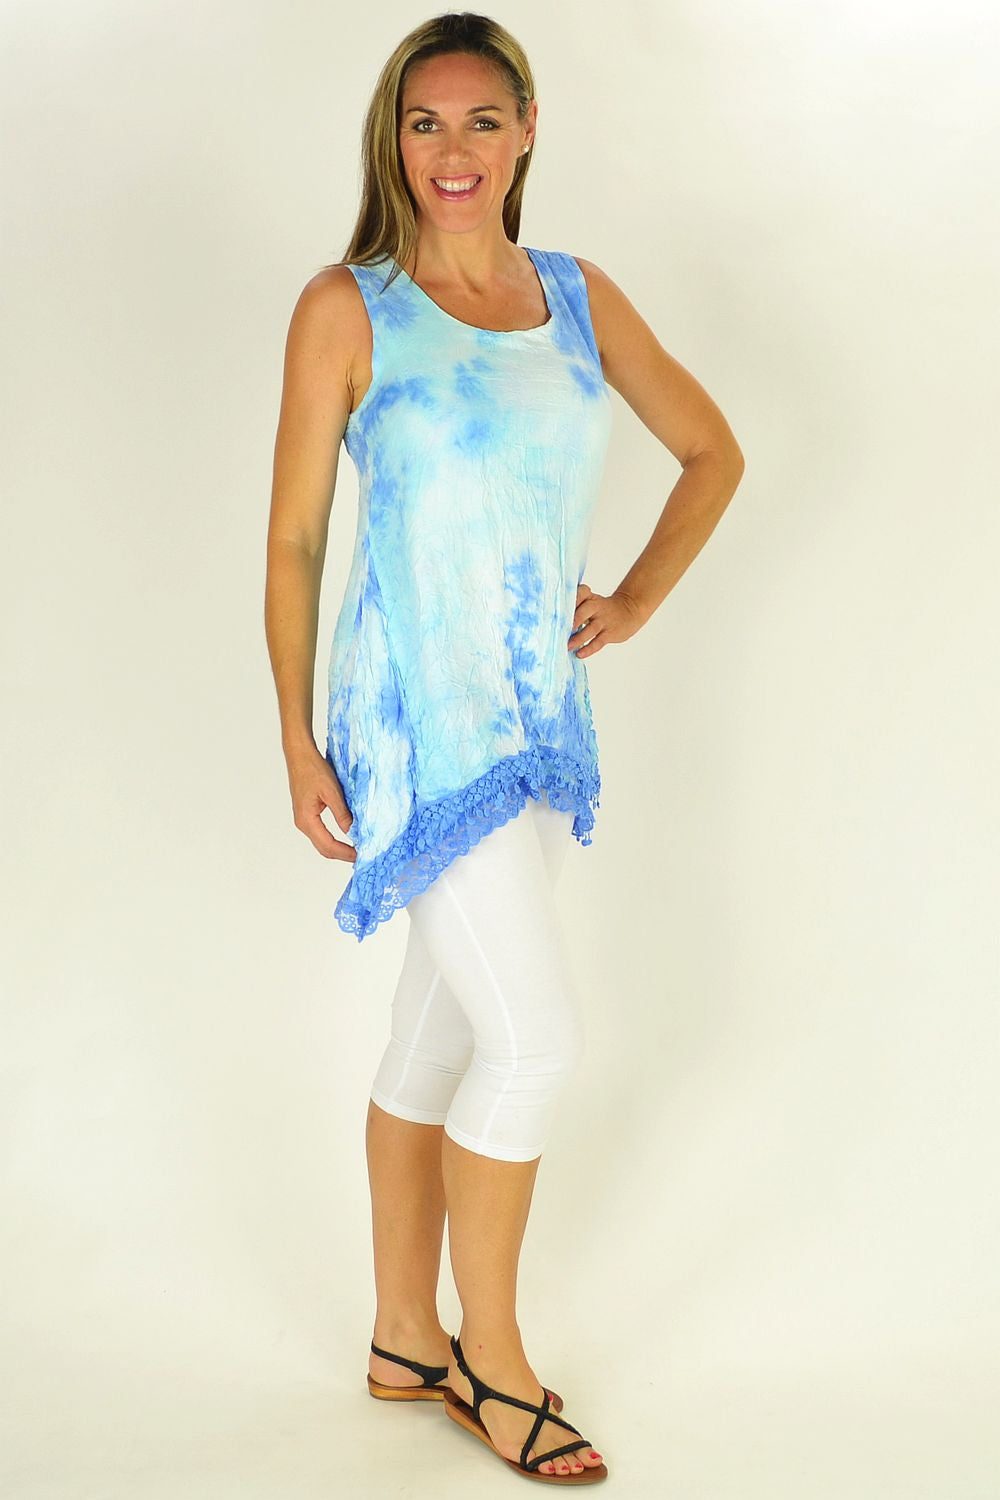 Sky Blue Threadz Tunic - at I Love Tunics @ www.ilovetunics.com = Number One! Tunics Destination